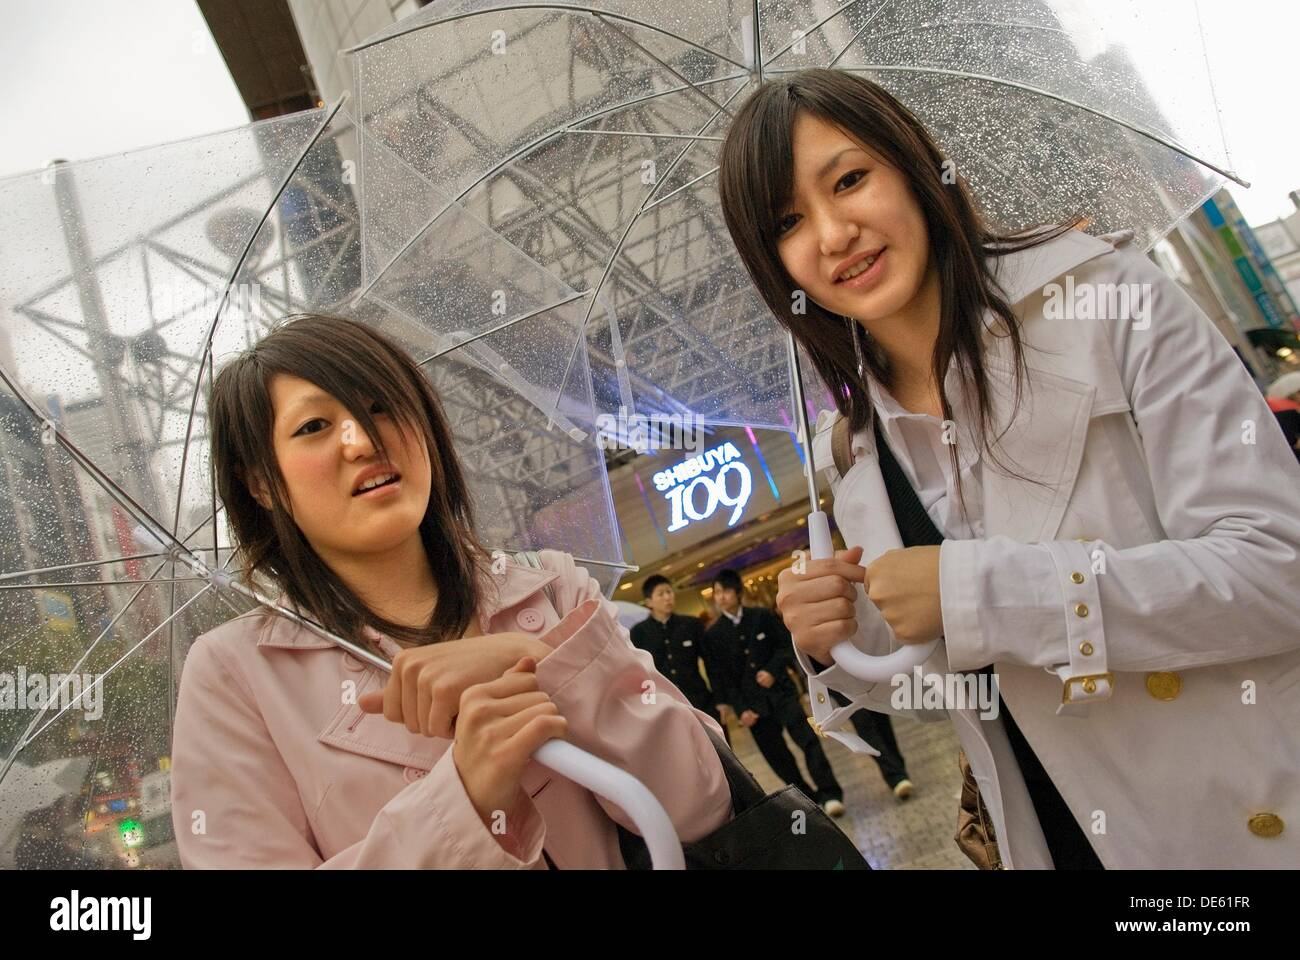 young women on the way to famous shopping center 109 in Shibuya district,Tokyo,Japan - Stock Image